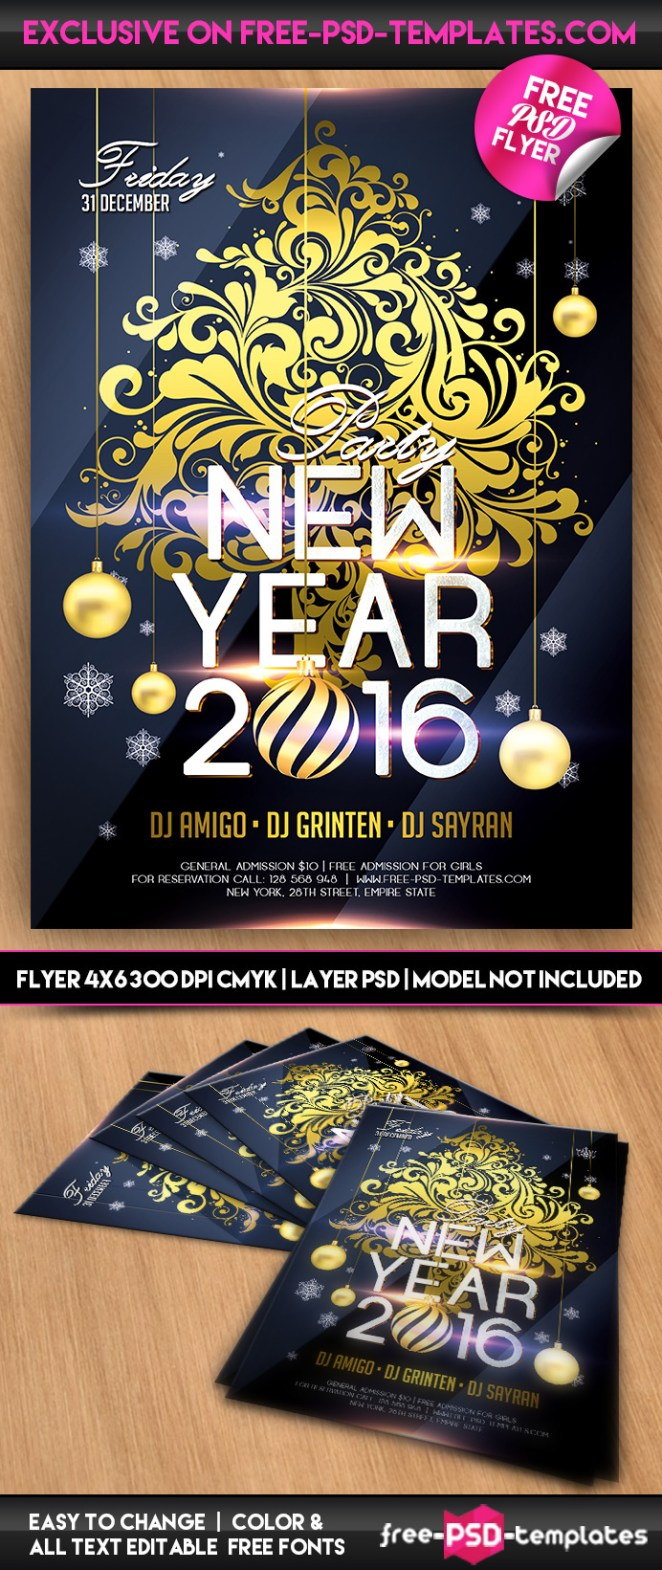 new year 2016 free psd template